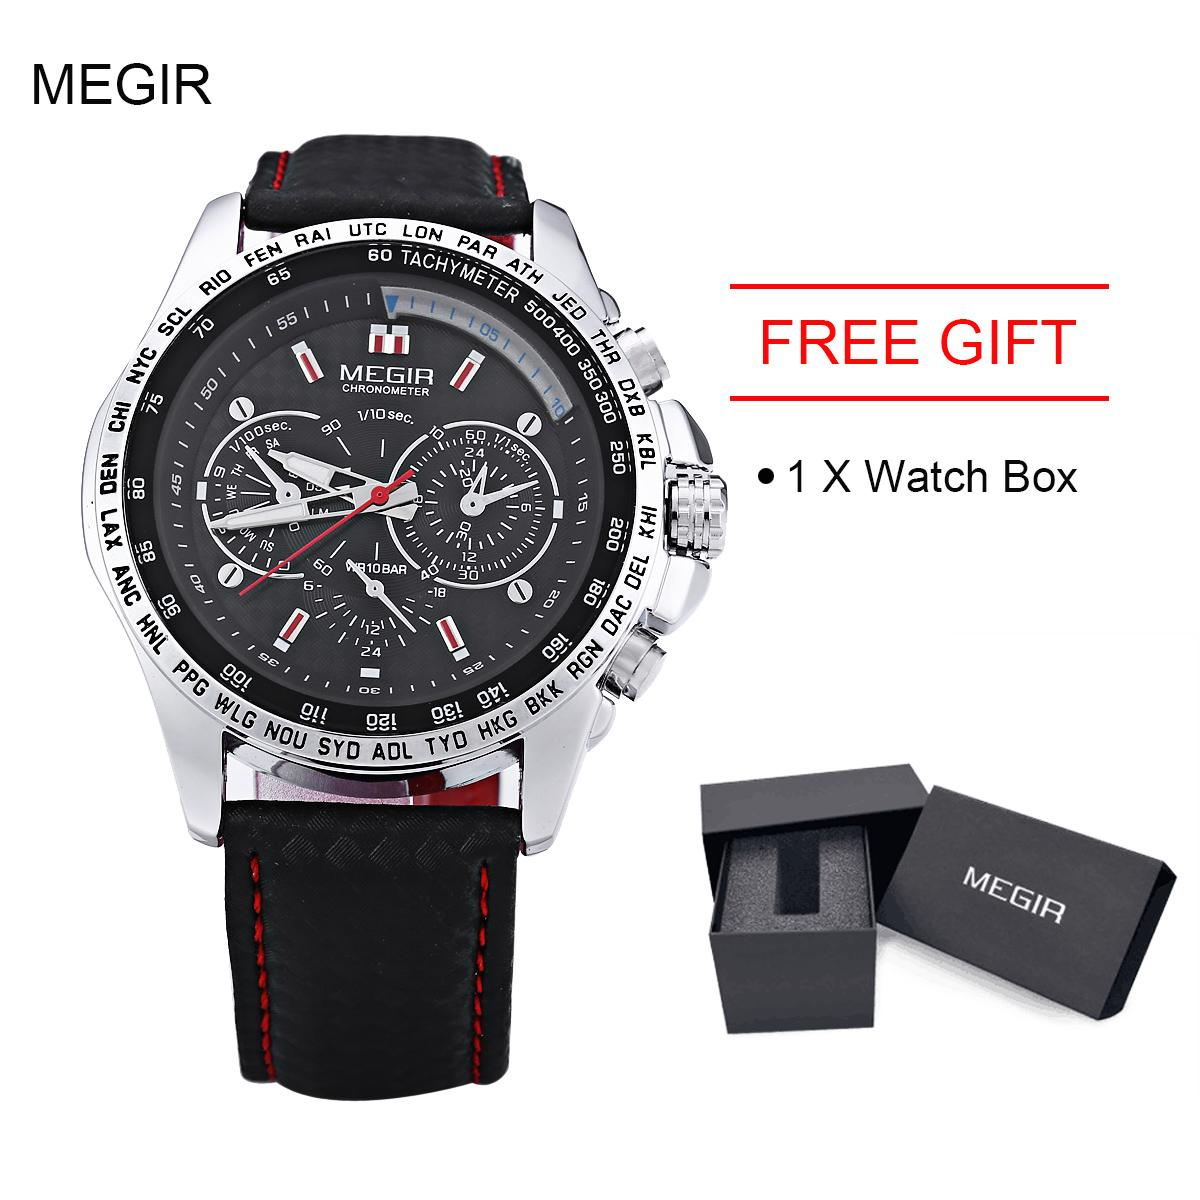 MEGIR M1010 Male Quartz Watch Multifunctional Water Resistance Wristwatch - intl With Watch Box